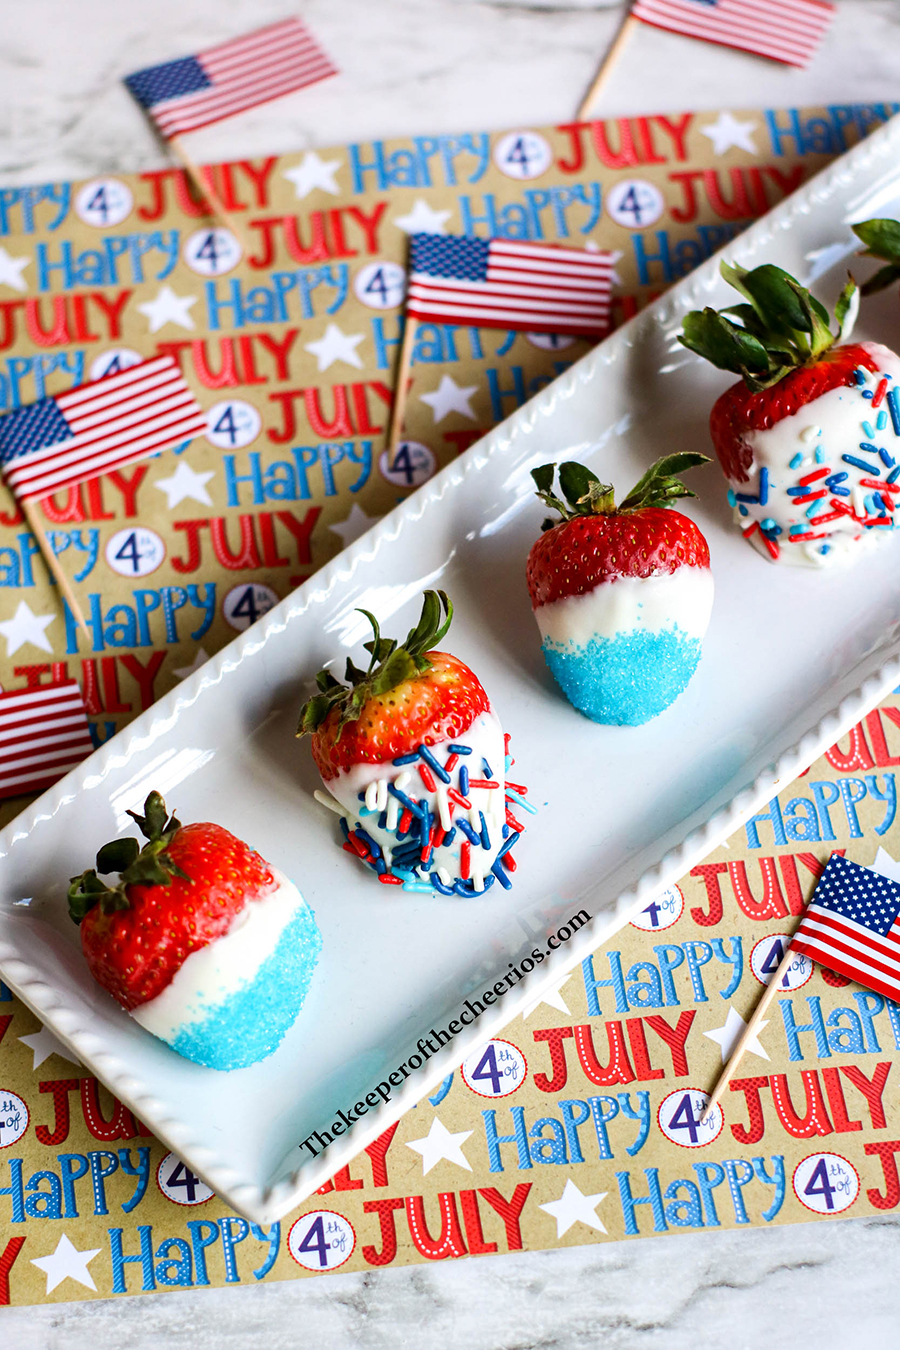 Patriotic-Dipped-Strawberries-final-7